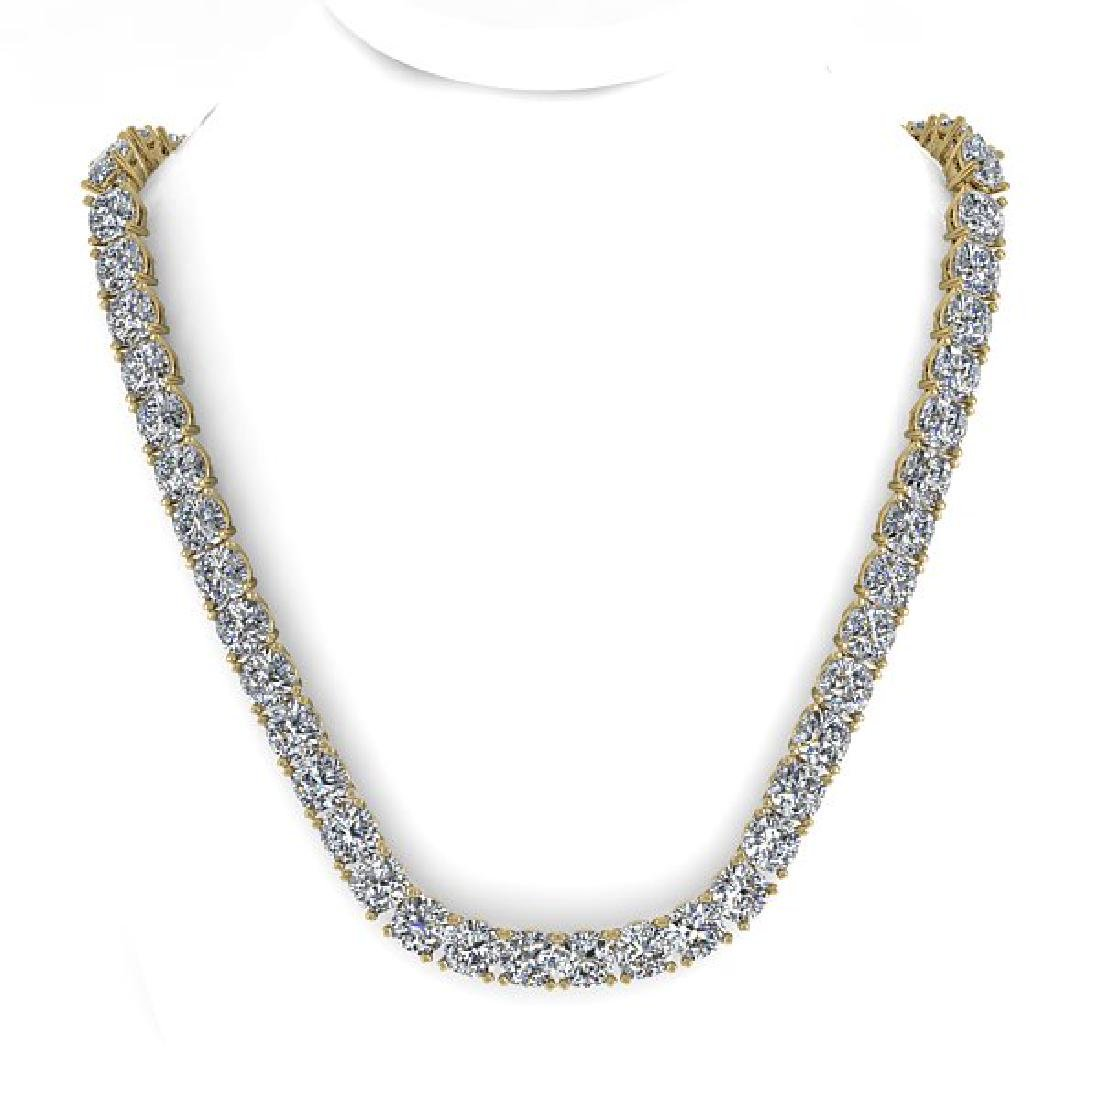 35 CTW Cushion Cut Certified SI Diamond Necklace 14K - 2